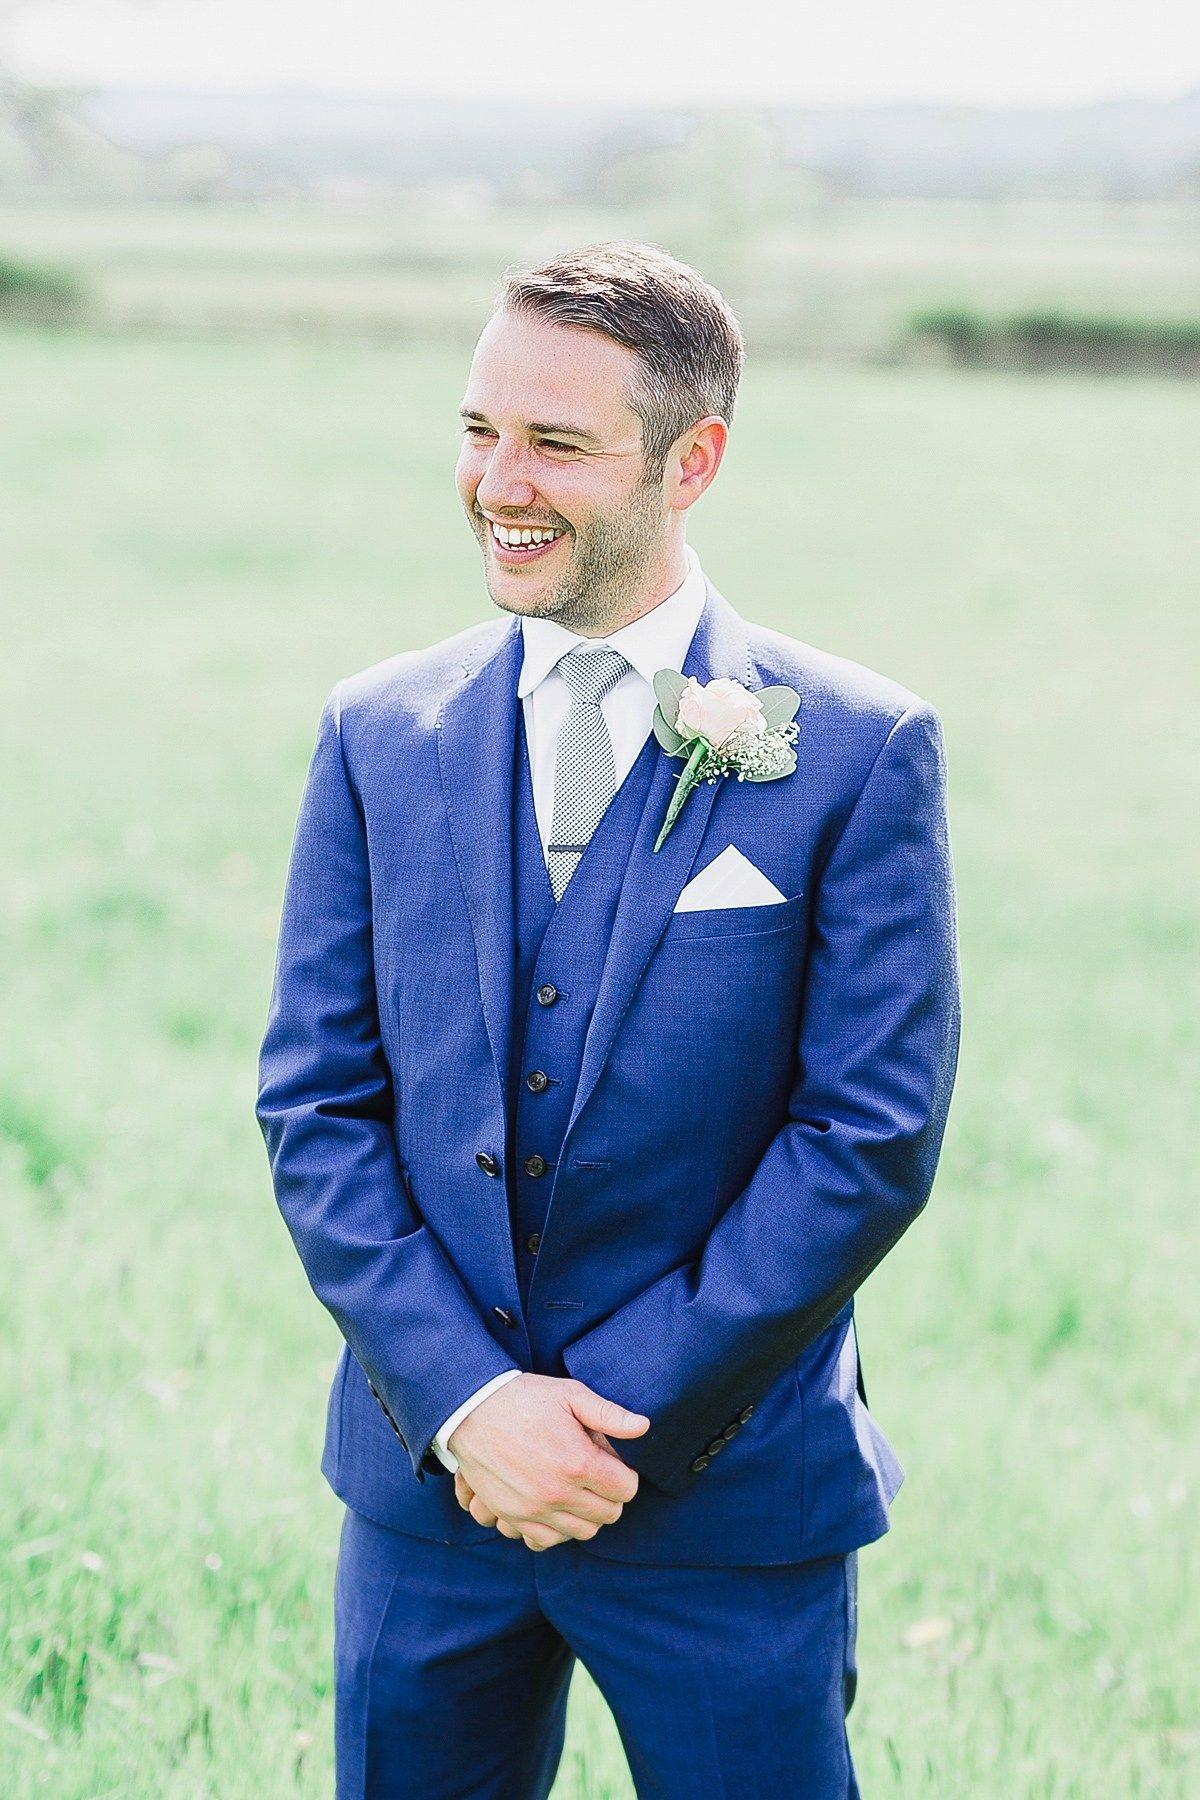 Groom wears a three piece blue suit. Photography by http://whitestagweddings.com/Photography.